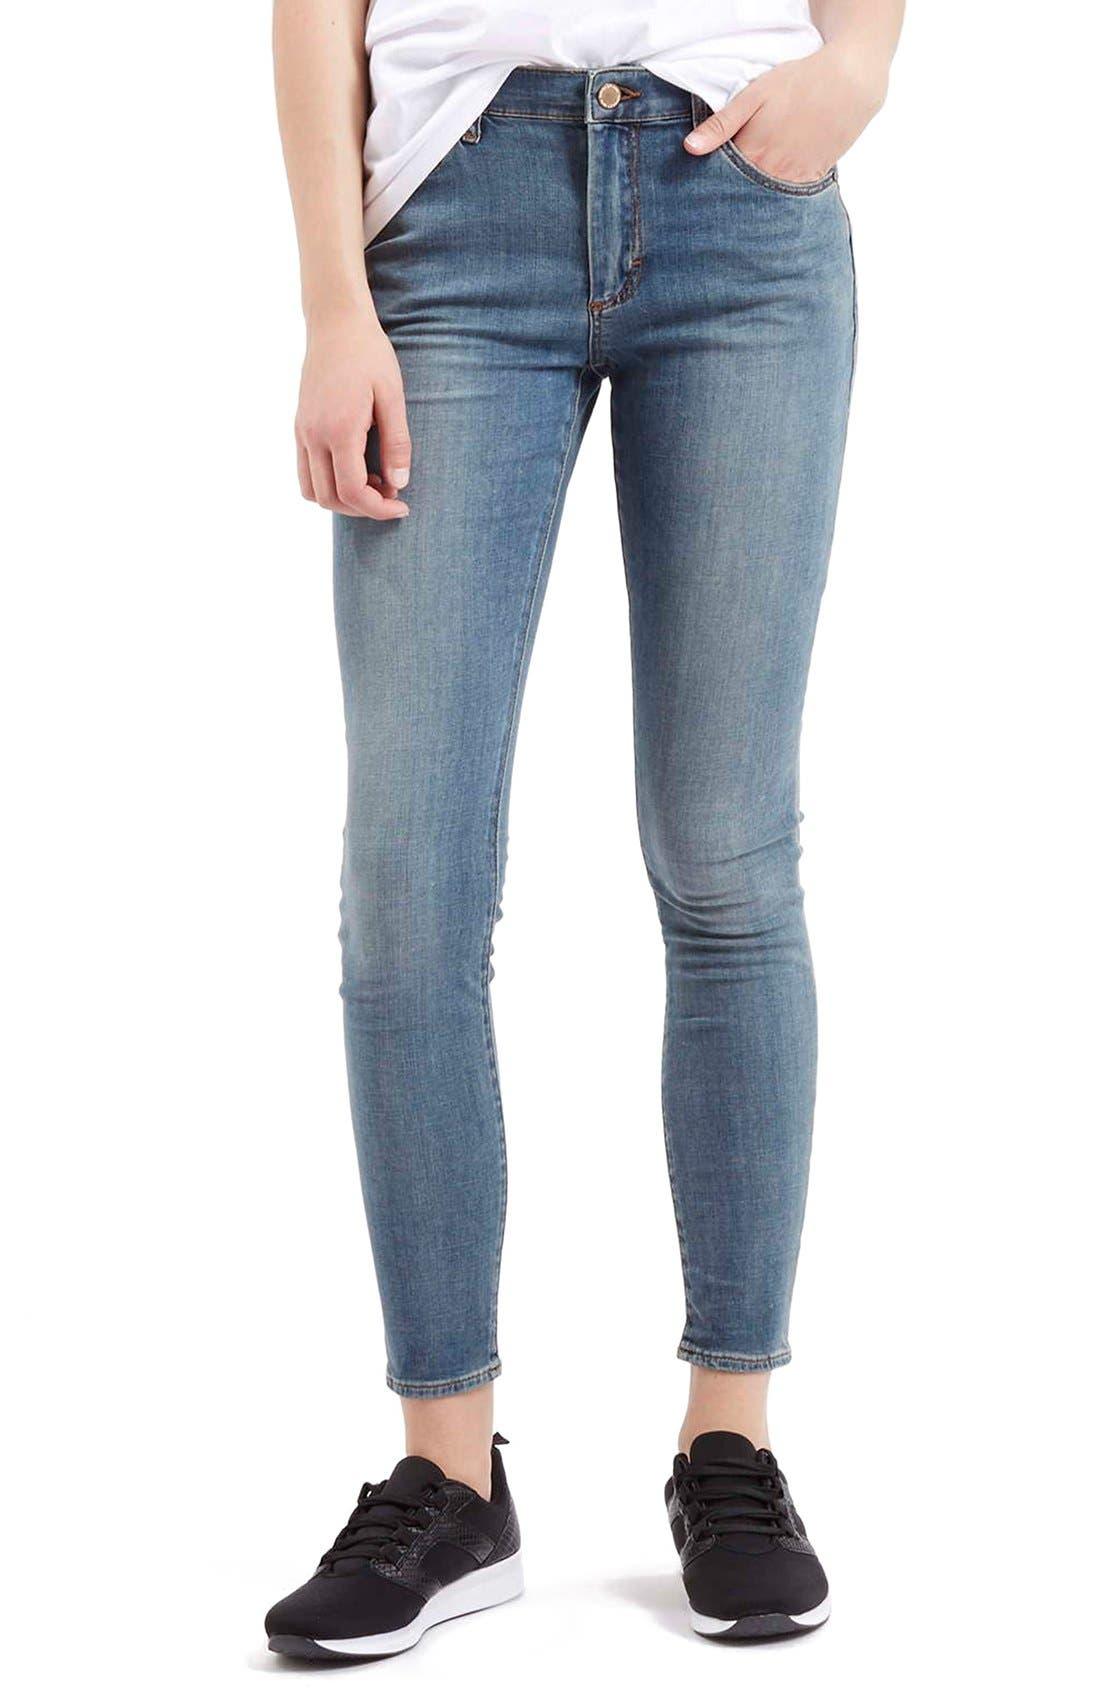 Alternate Image 1 Selected - Topshop Moto 'Leigh' Ankle Skinny Jeans (Light Denim)